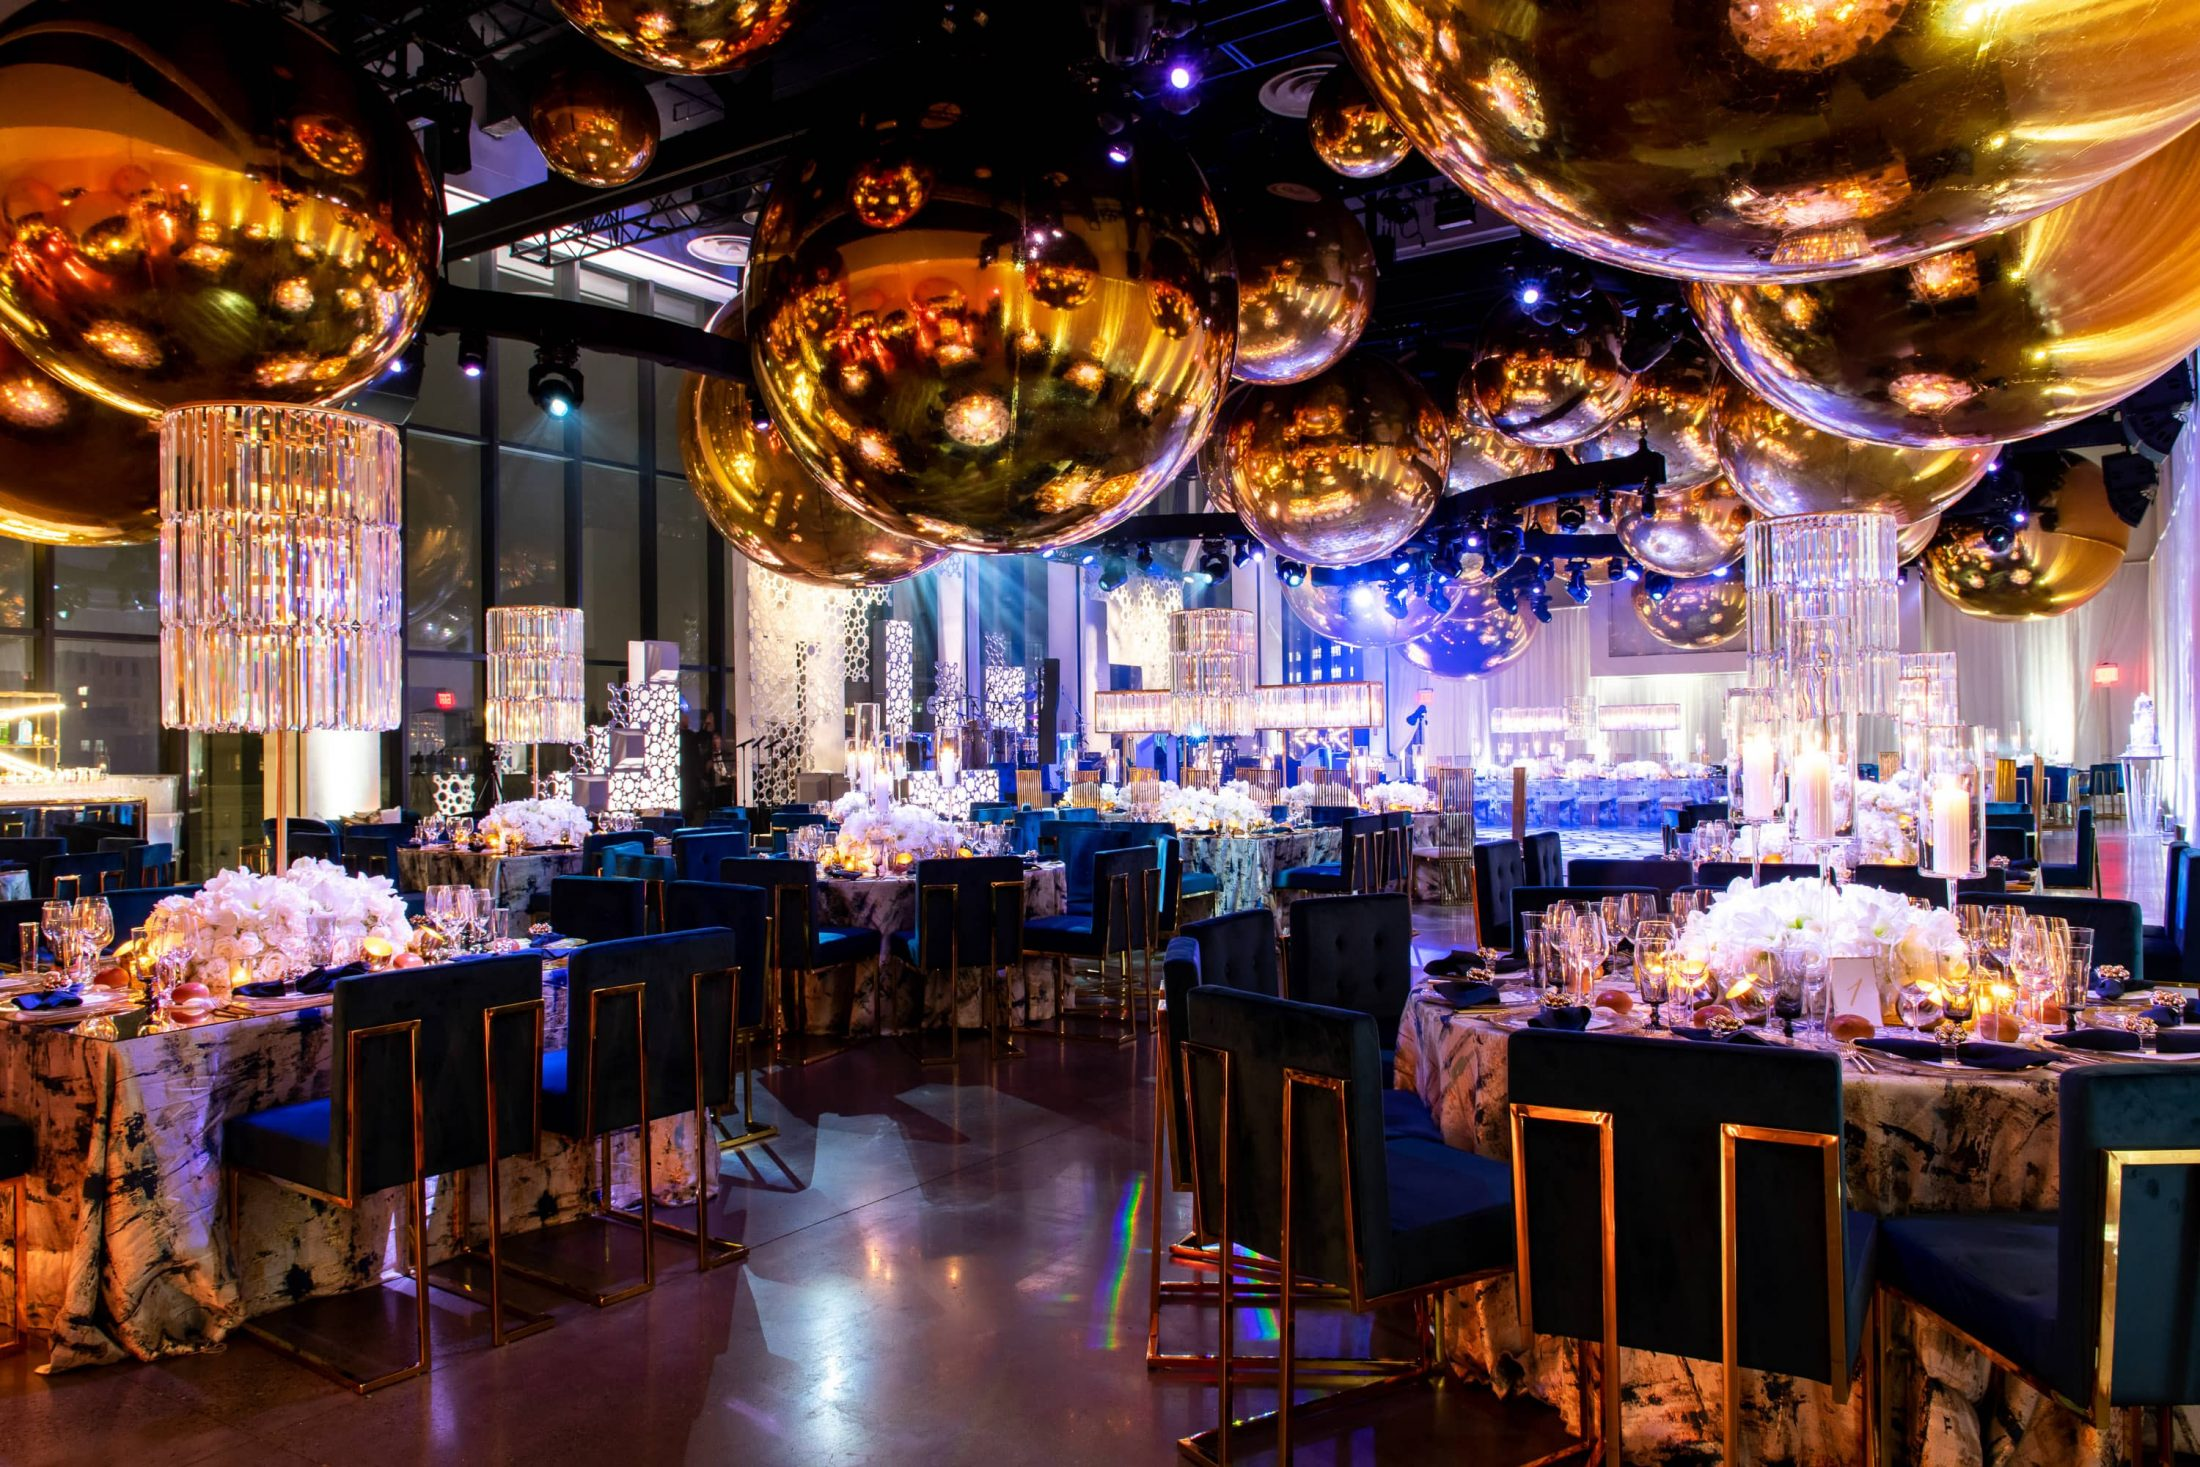 Champagne bottle-inspired reception at this NYE wedding in New York City | Photo by Gruber Photo